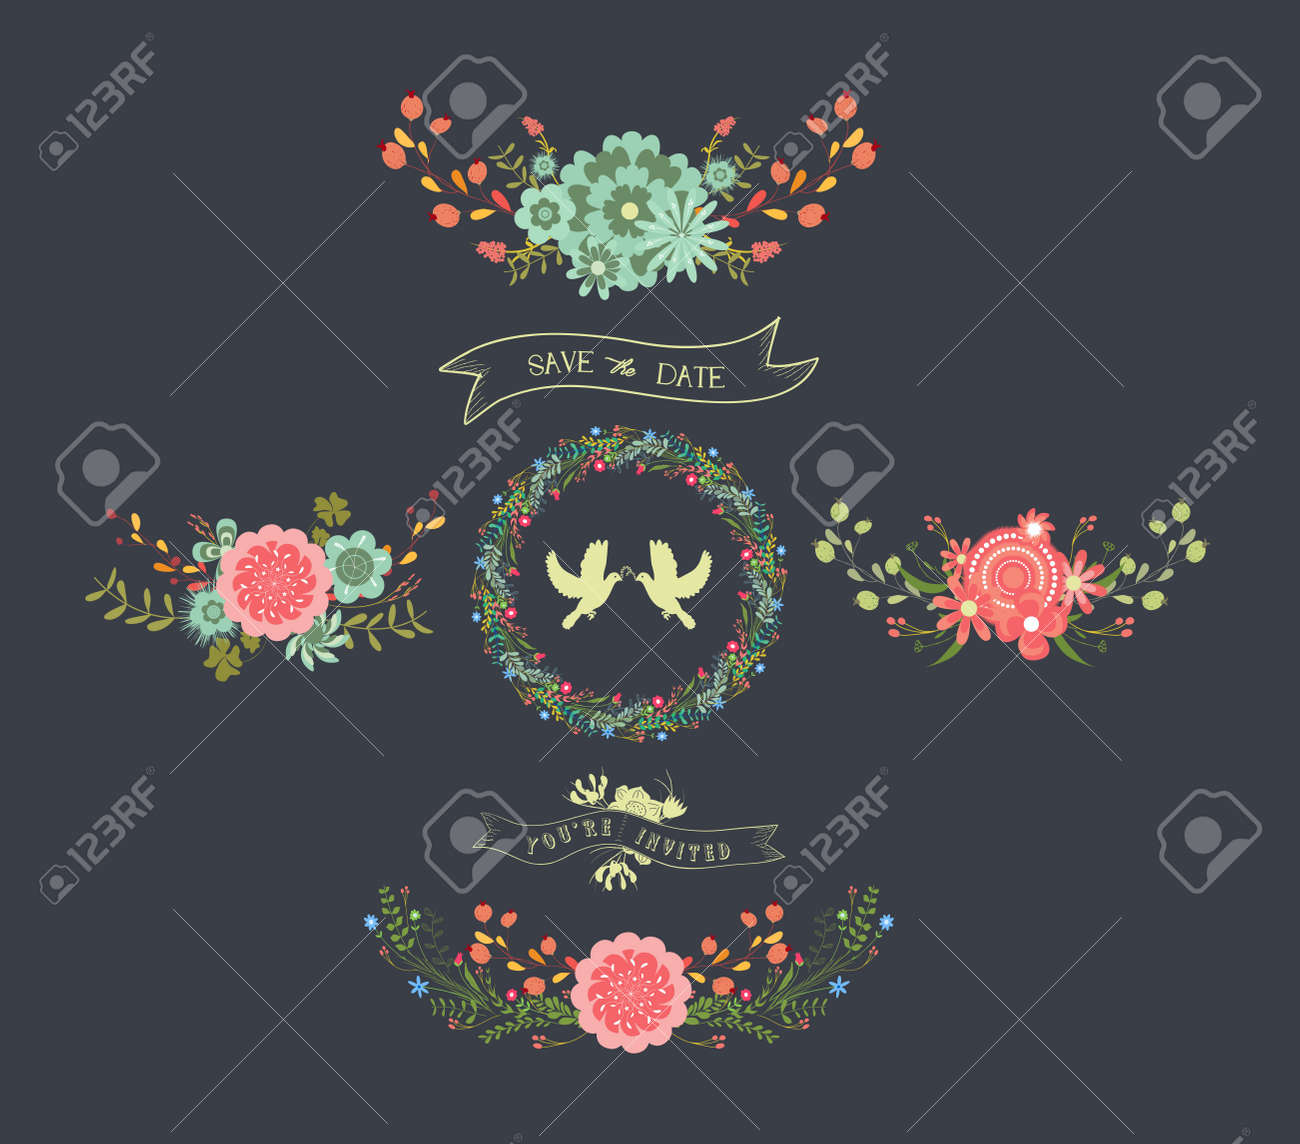 Chalkboard Natural Floral Wreaths Royalty Free Cliparts, Vectors ...